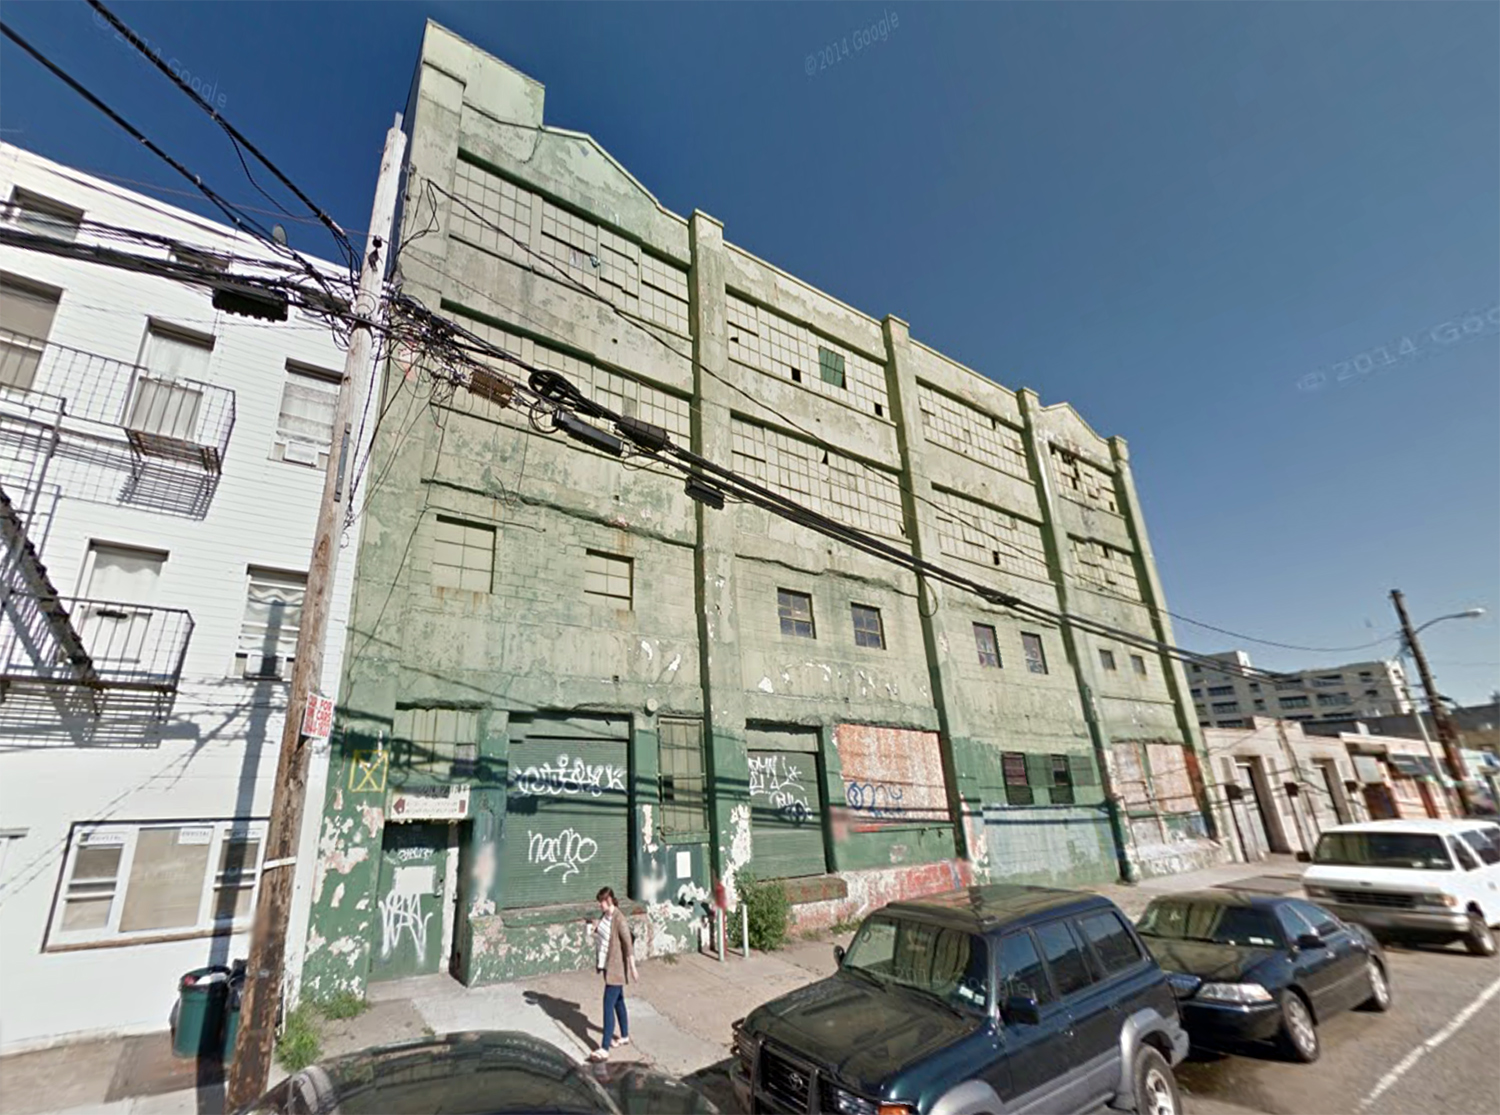 The Paragon Paint Factory. Via Google Maps.